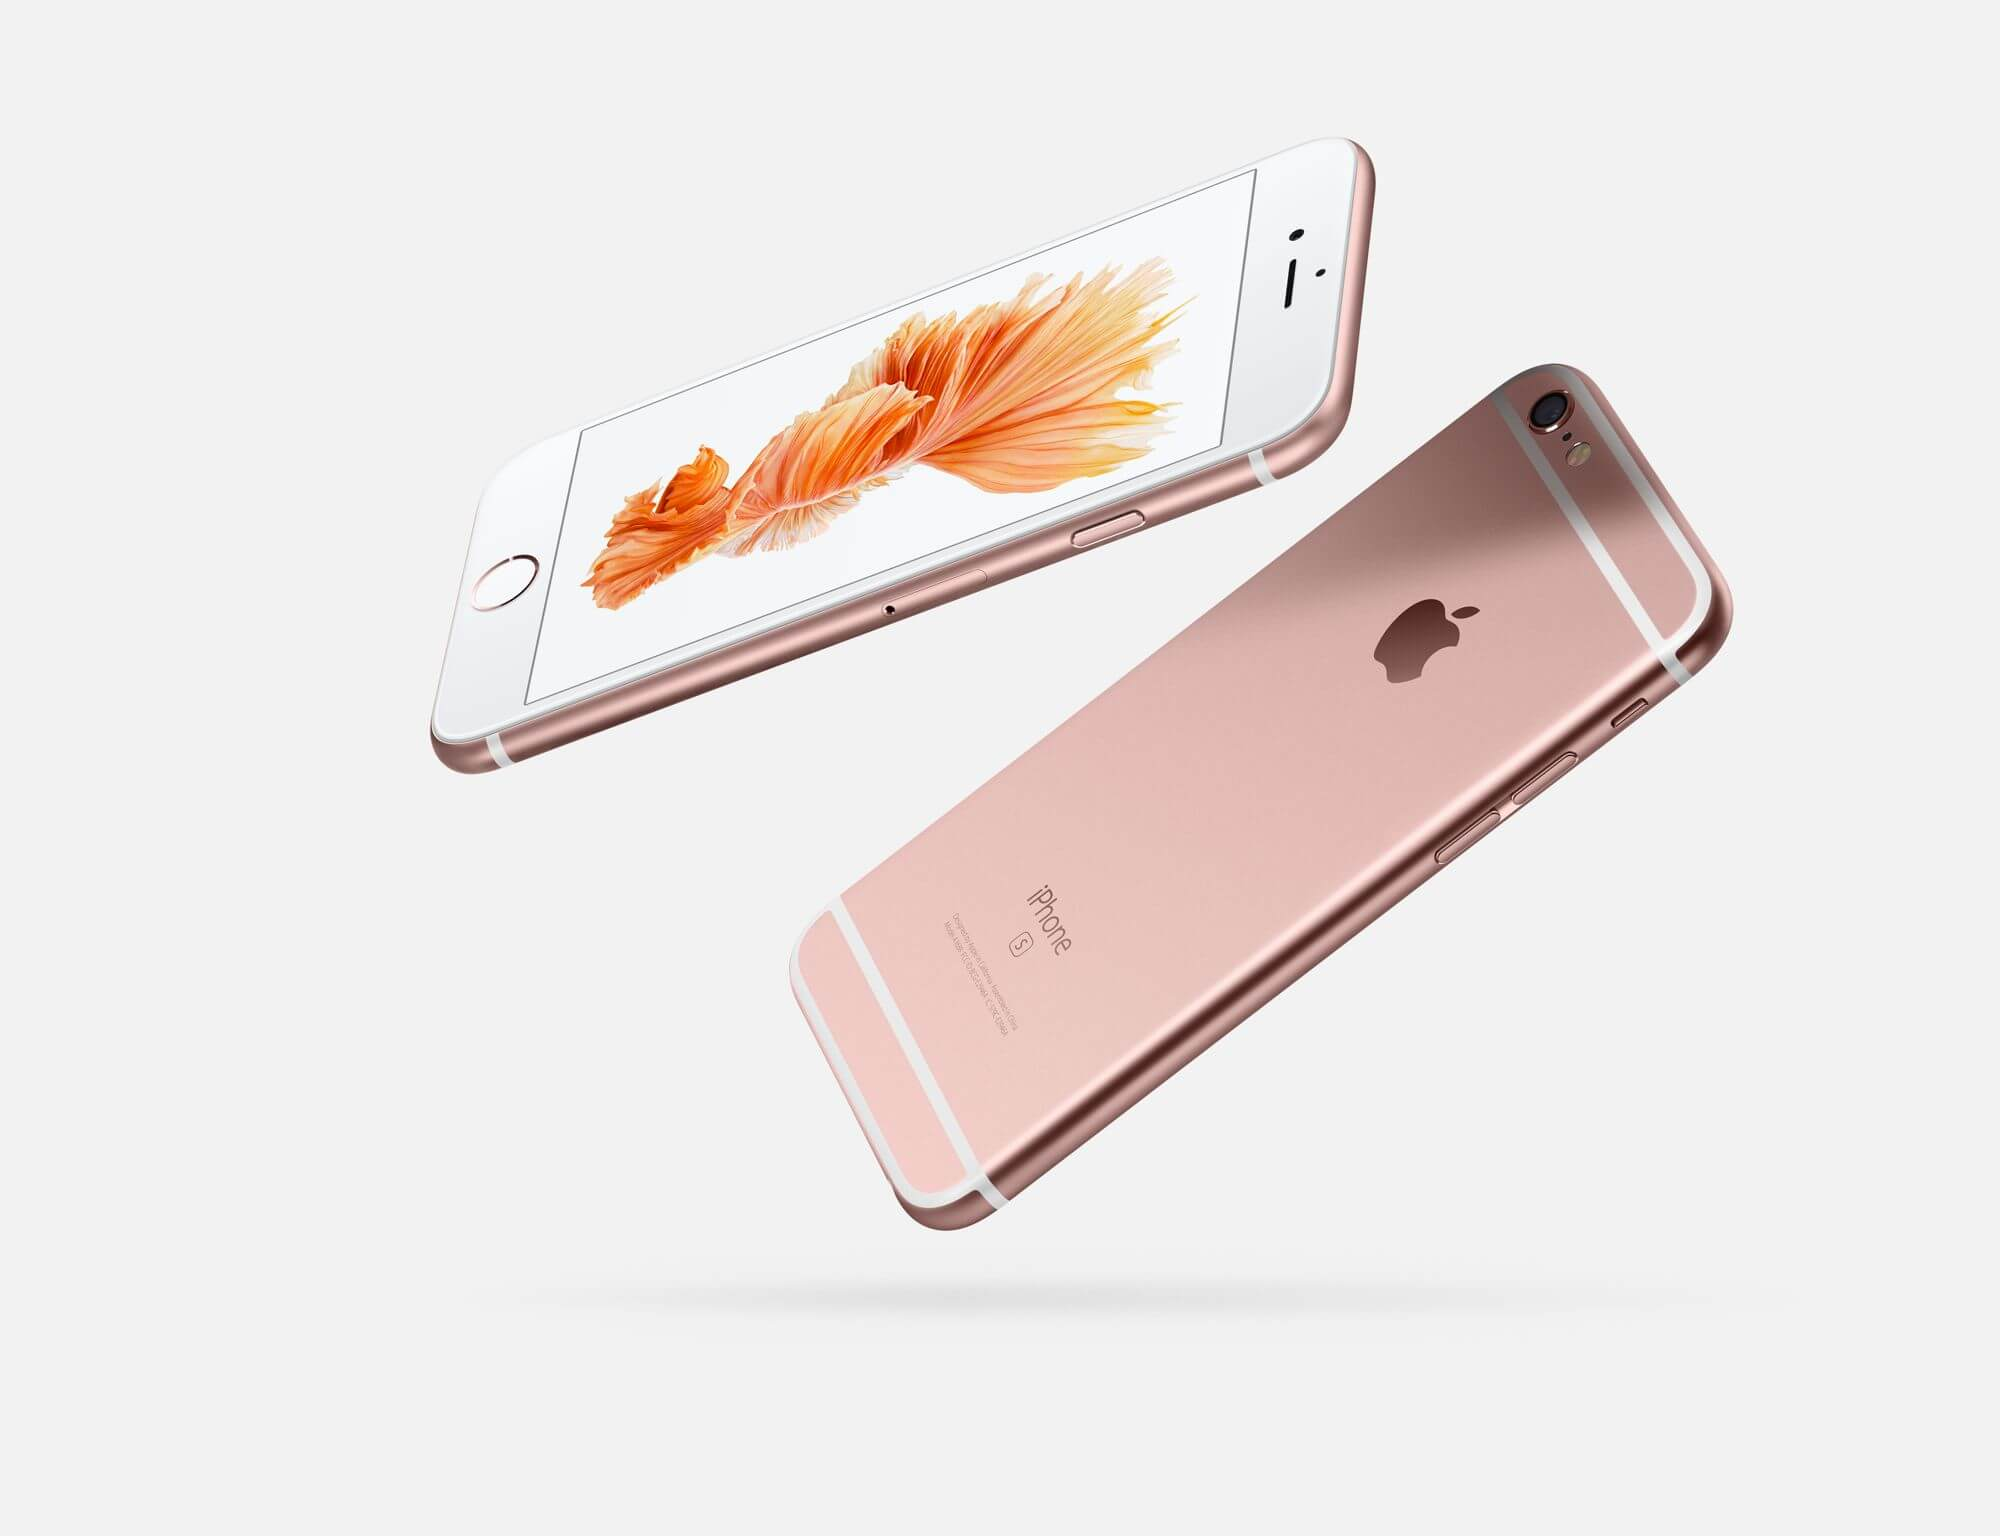 The iPhone 6S and the 6S Plus are here!